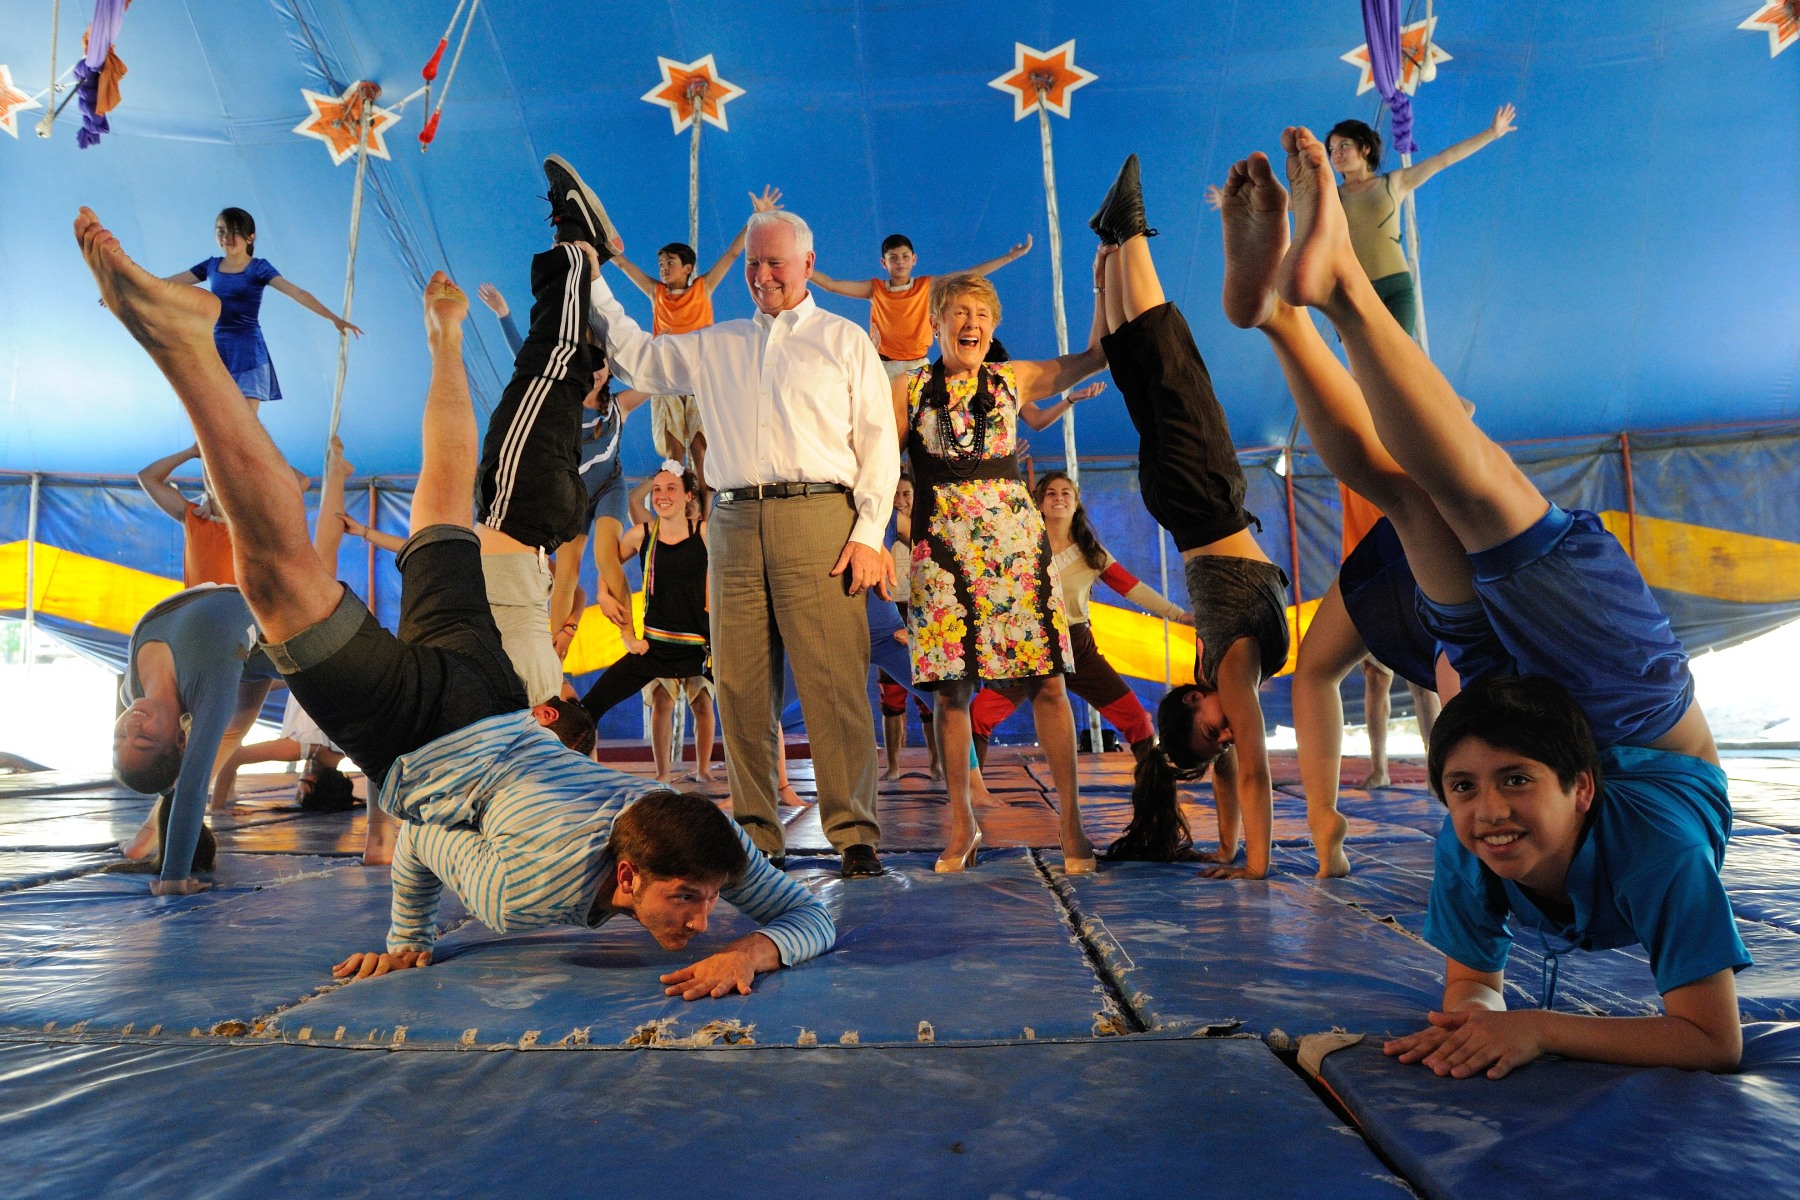 Circo del Mundo was created through the initiative of Cirque du Soleil and Jeunesse du Monde in 1995, as part of an international co-operation project with Corporación Canelo de Nos, a Chilean NGO.